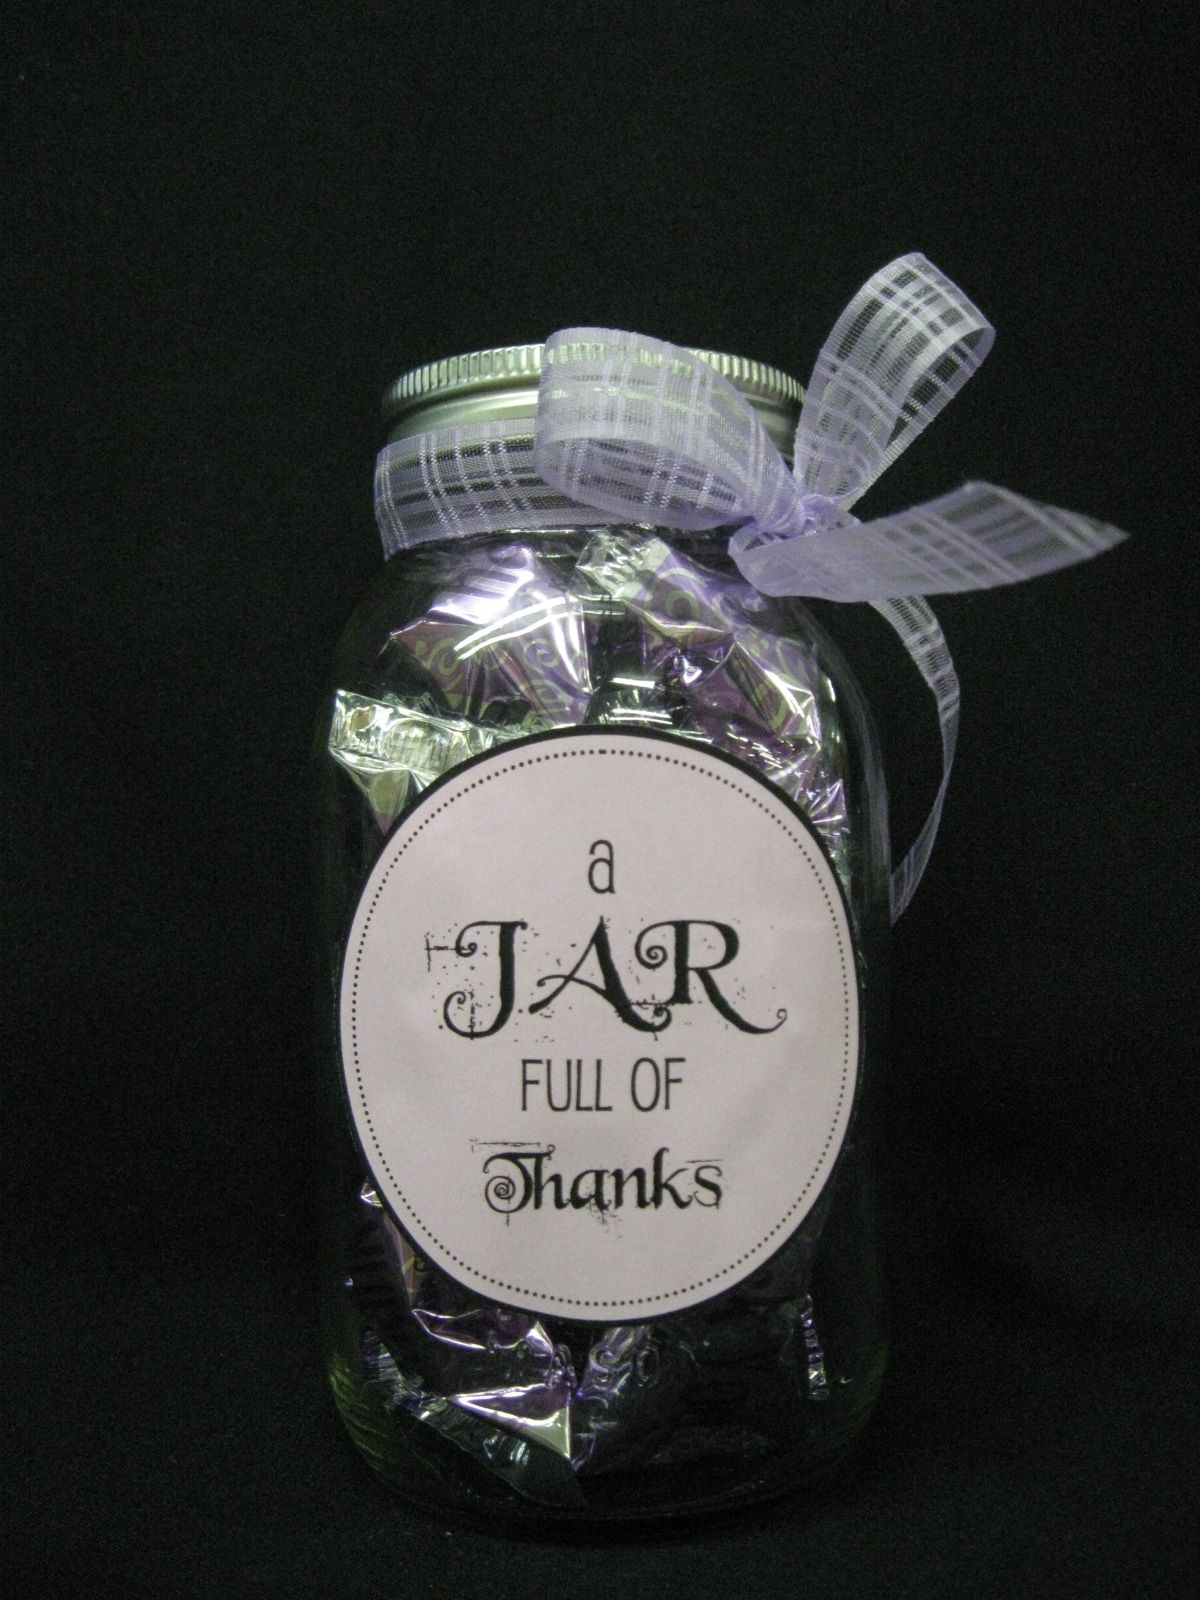 Lds Missionary Gift Ideas Online Party Supply Store Online Party Supplies Mason Jar Party Favor Diy Teacher Gifts